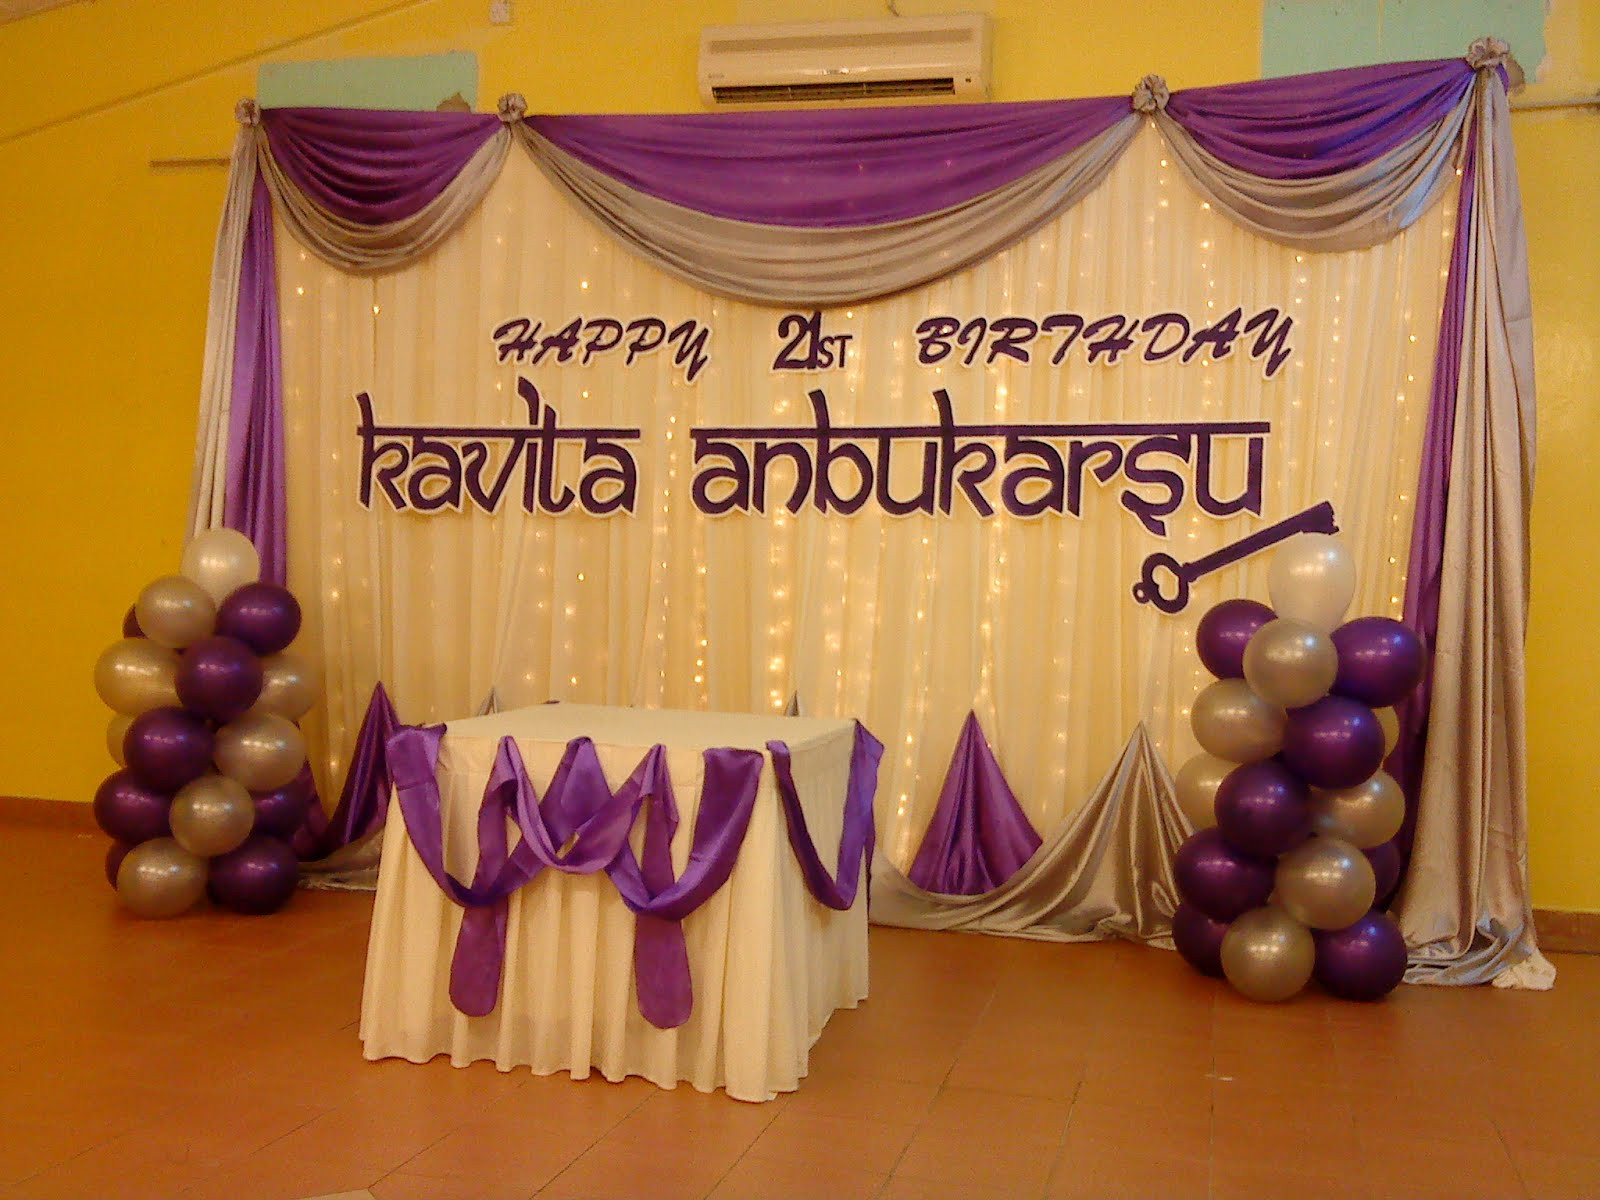 21st Birthday Decorations  Raags Management Services 21st Birthday Deco purple & white